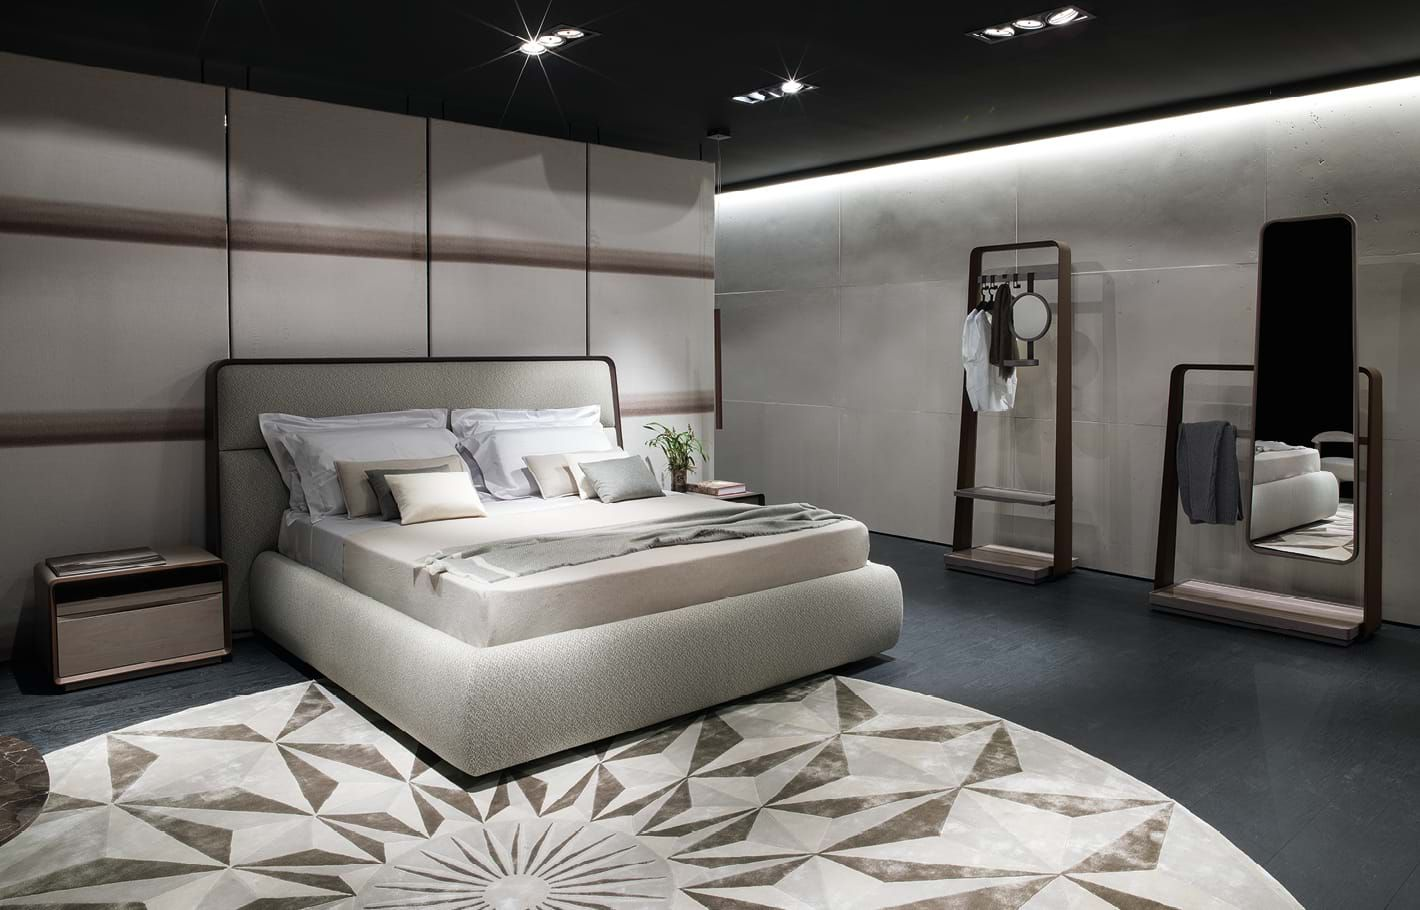 roberto lazzeroni beds collection projects Roberto